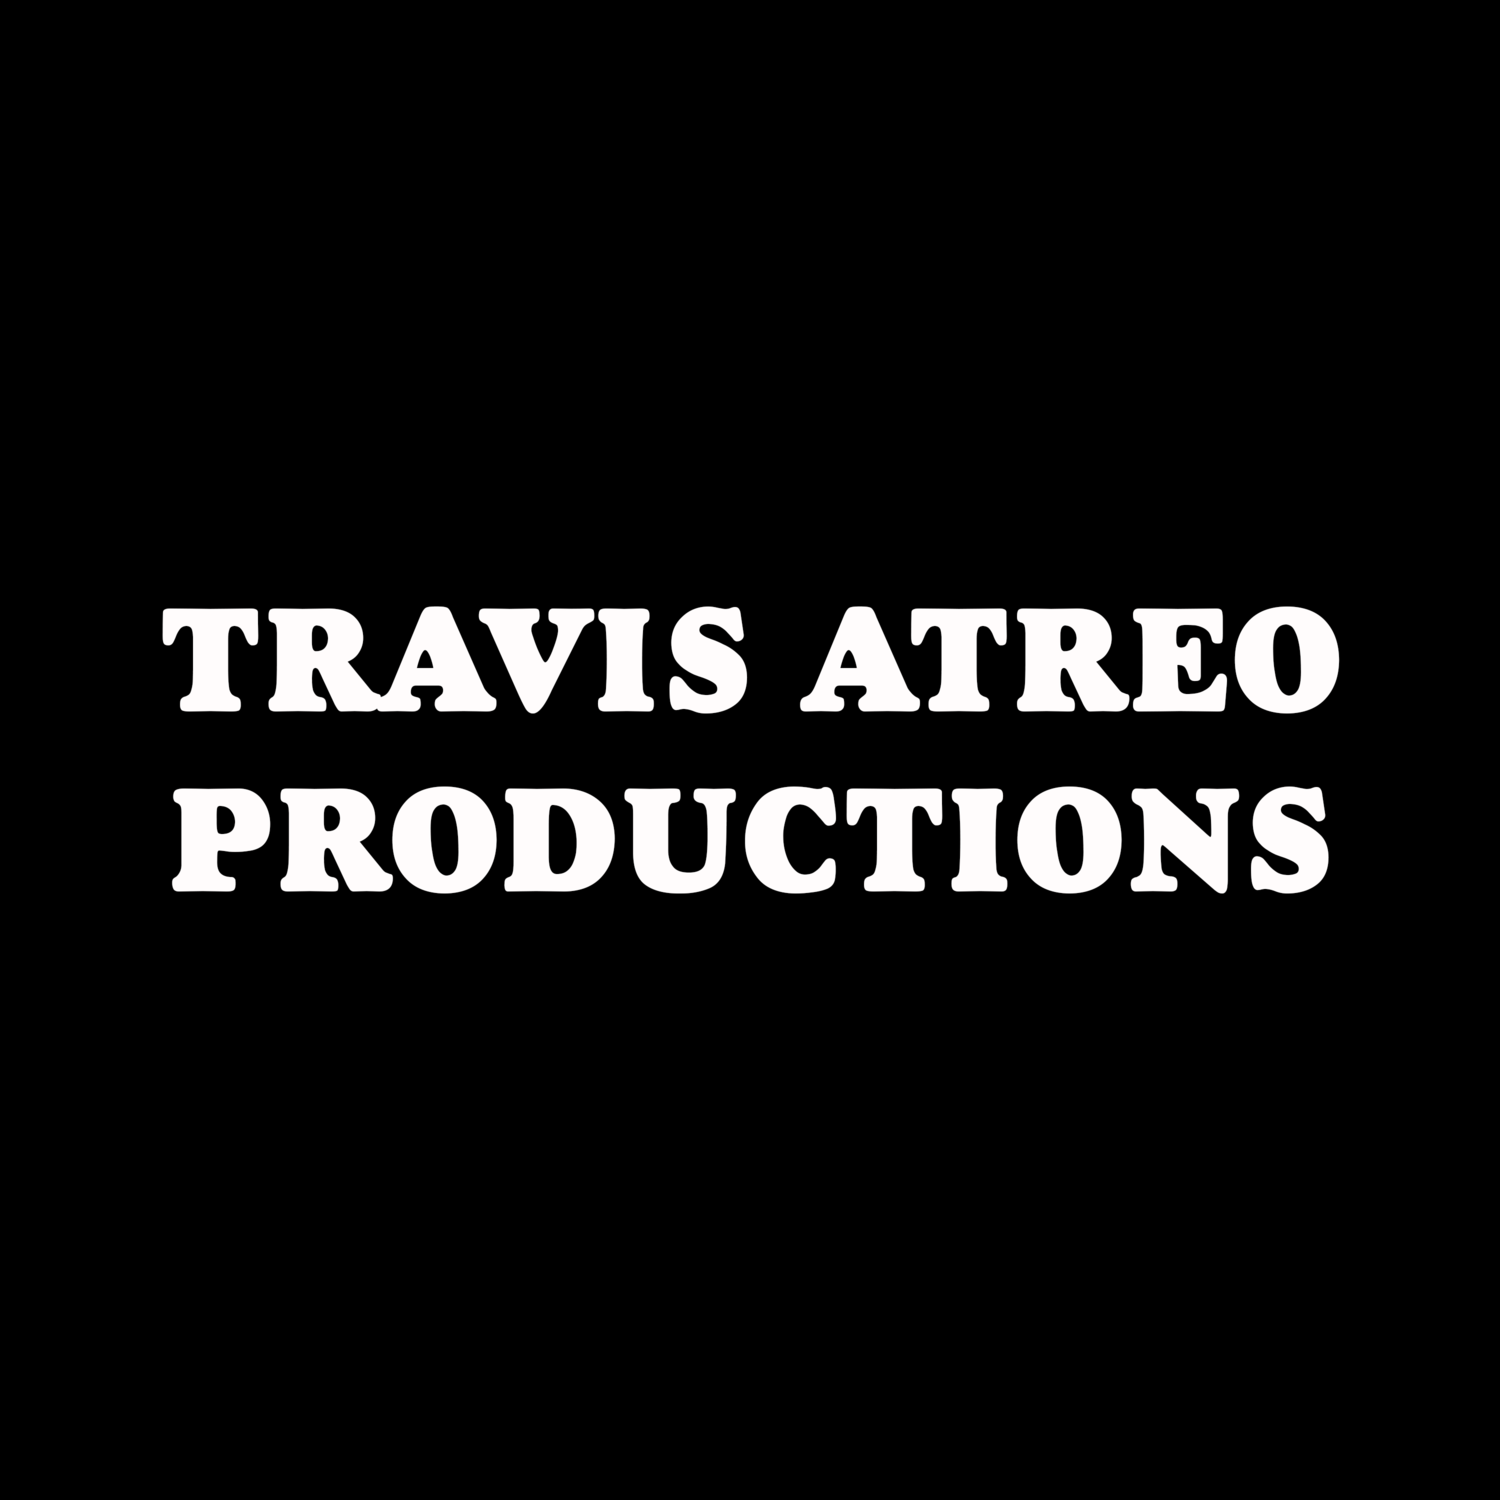 Travis Atreo Productions